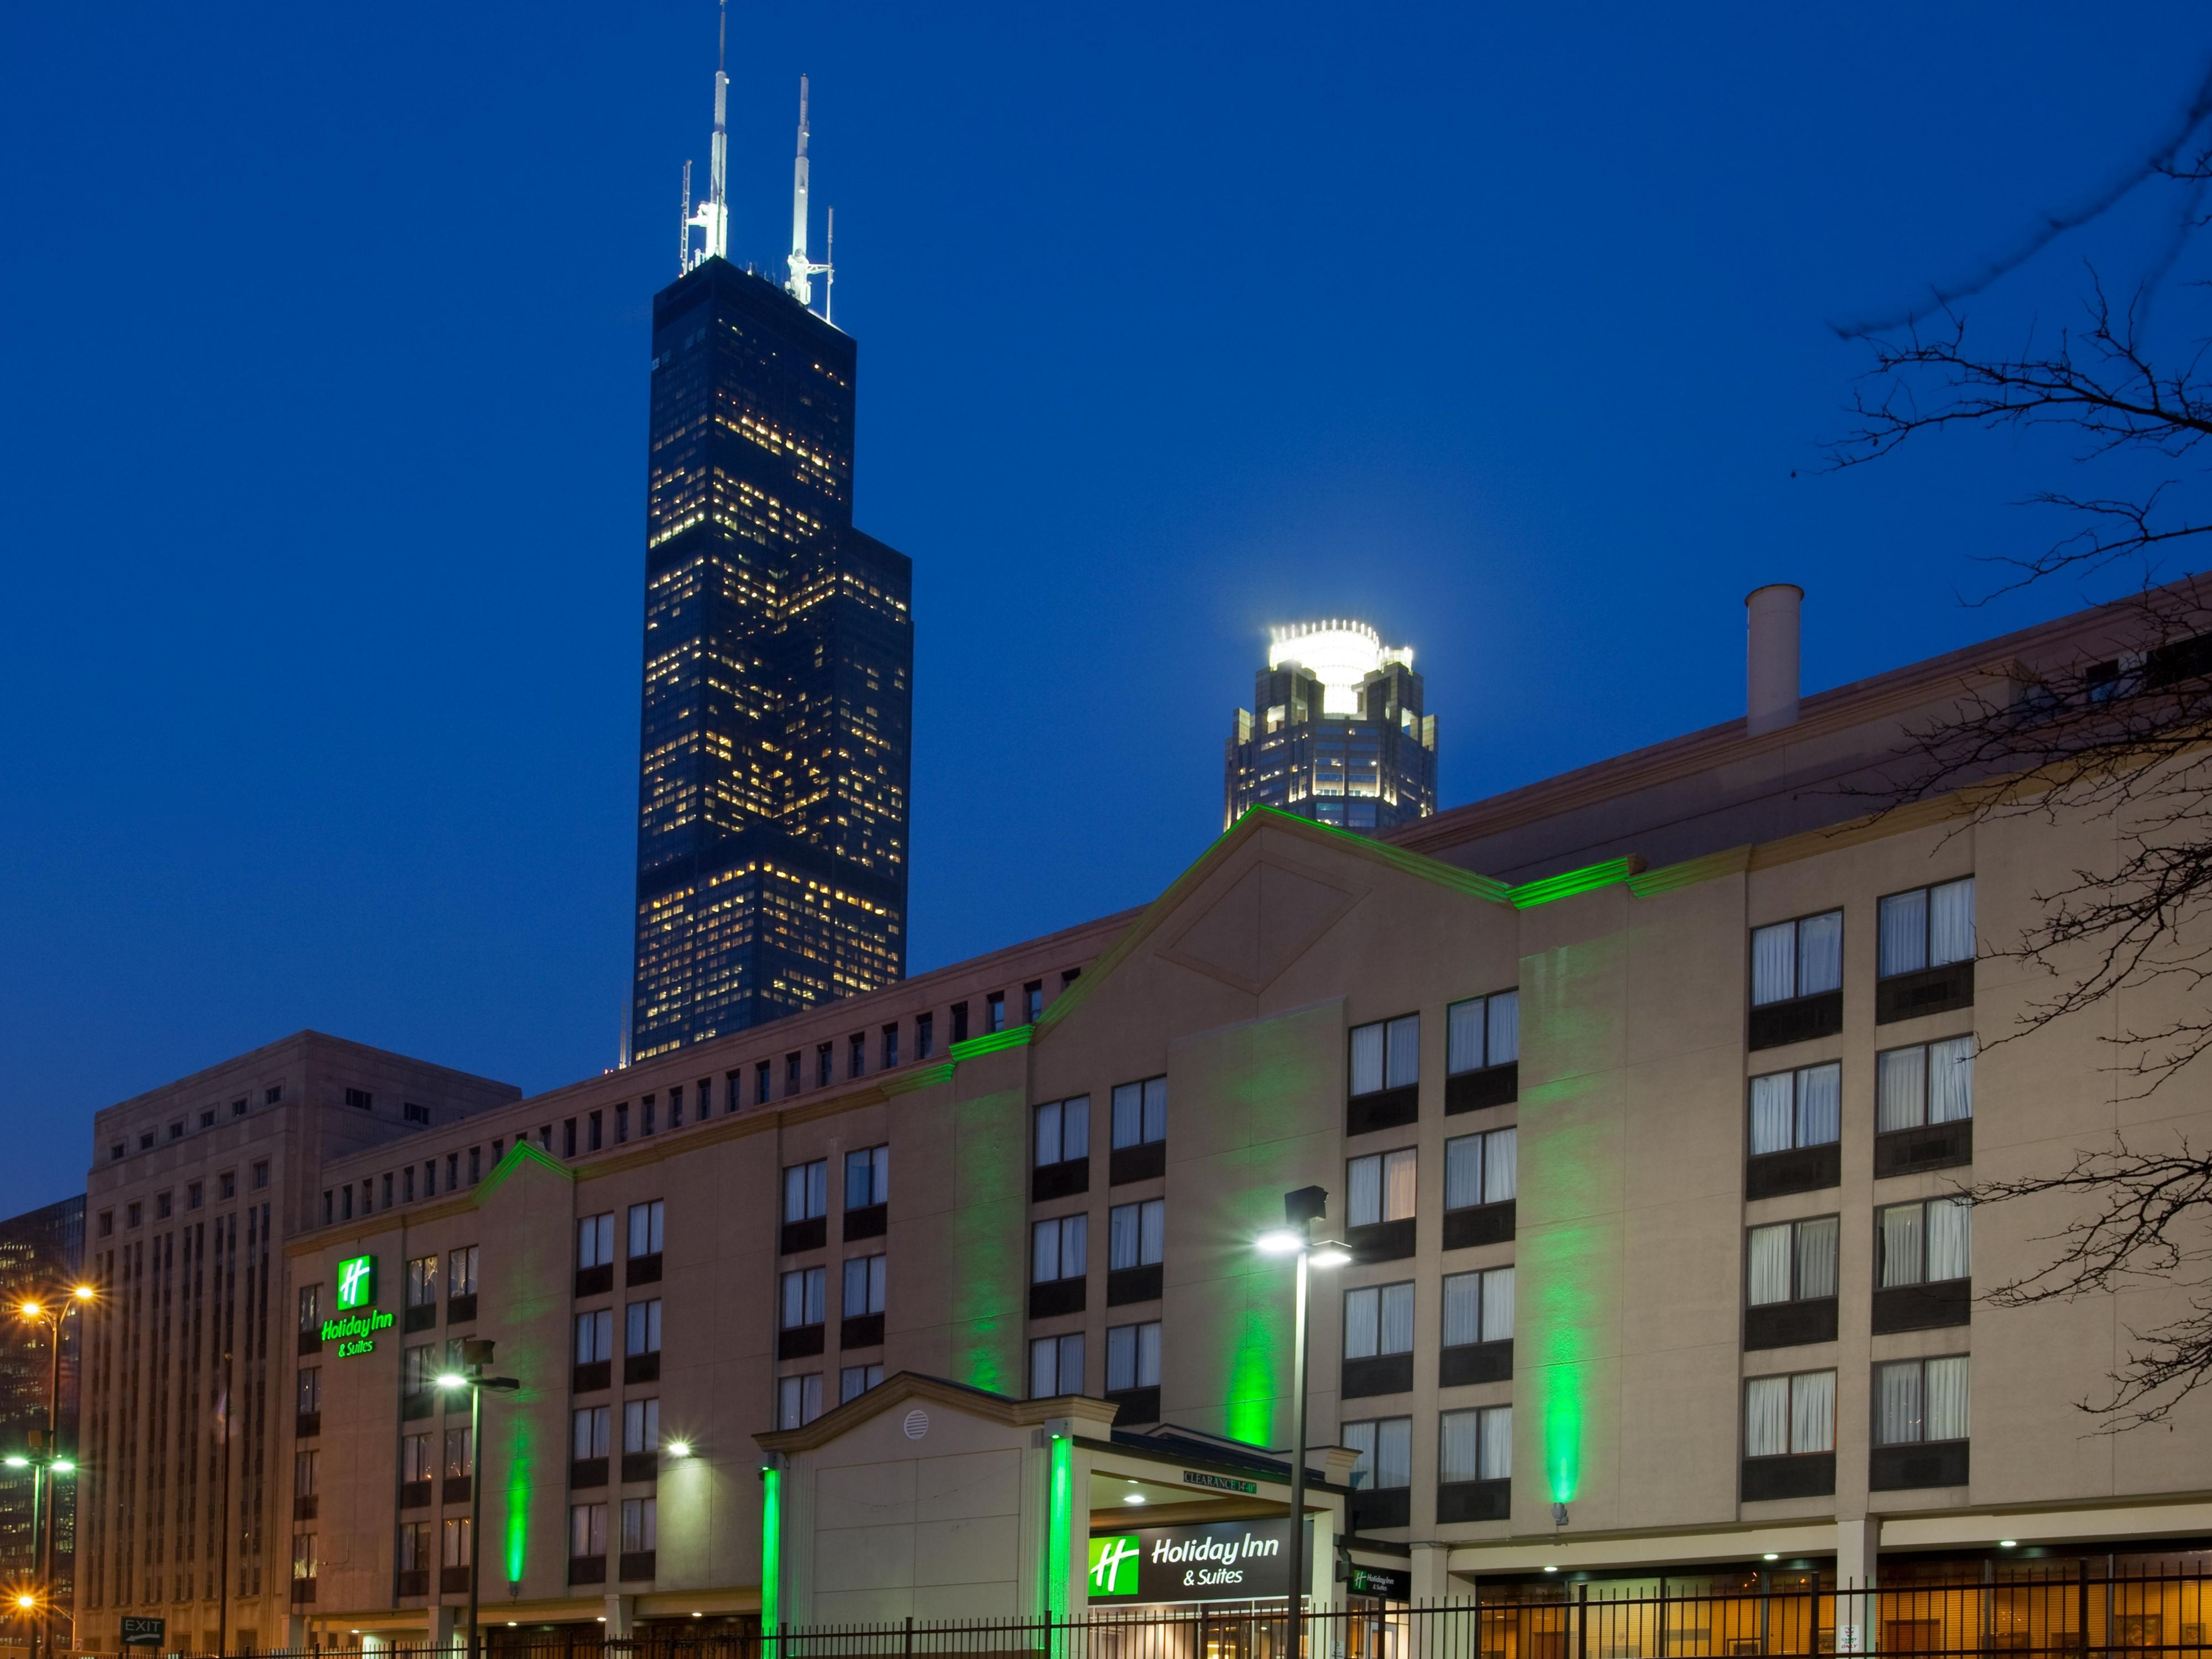 Holiday Inn Chicago Downtown Hotel near Willis Tower (Sears Tower)